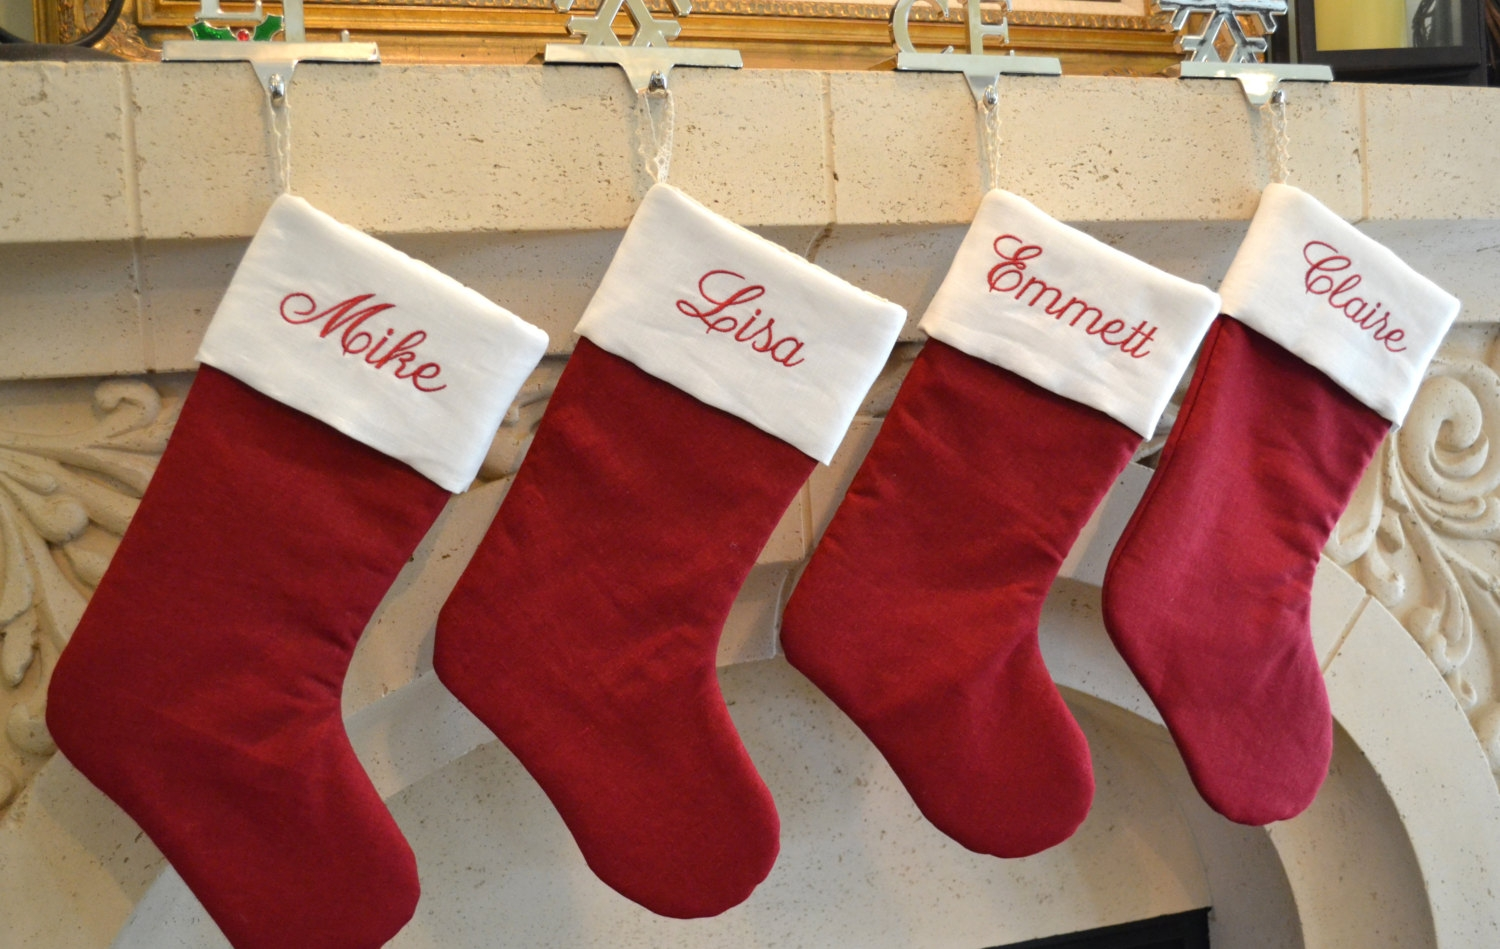 wonderful decorative red stocking monogrammed stockings above fireplaces